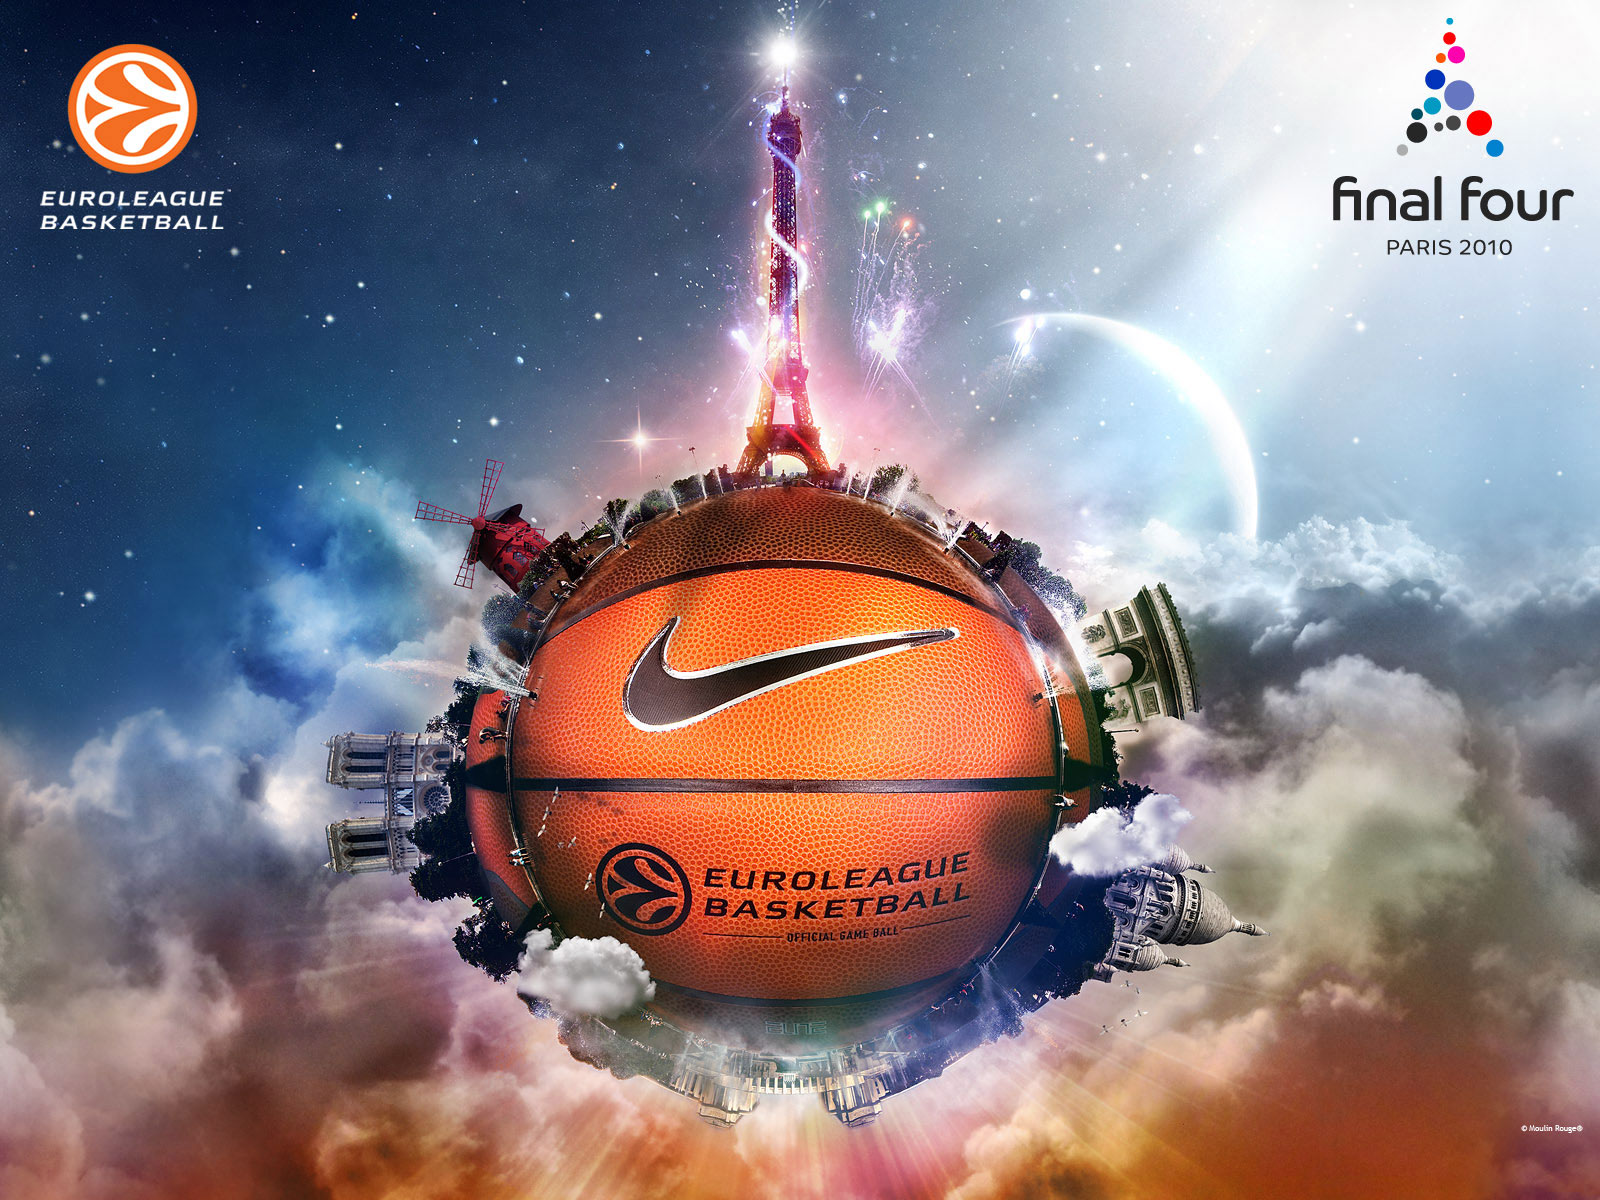 basketball wallpapers basketball wallpapers 2015 basketball wallpapers 1600x1200